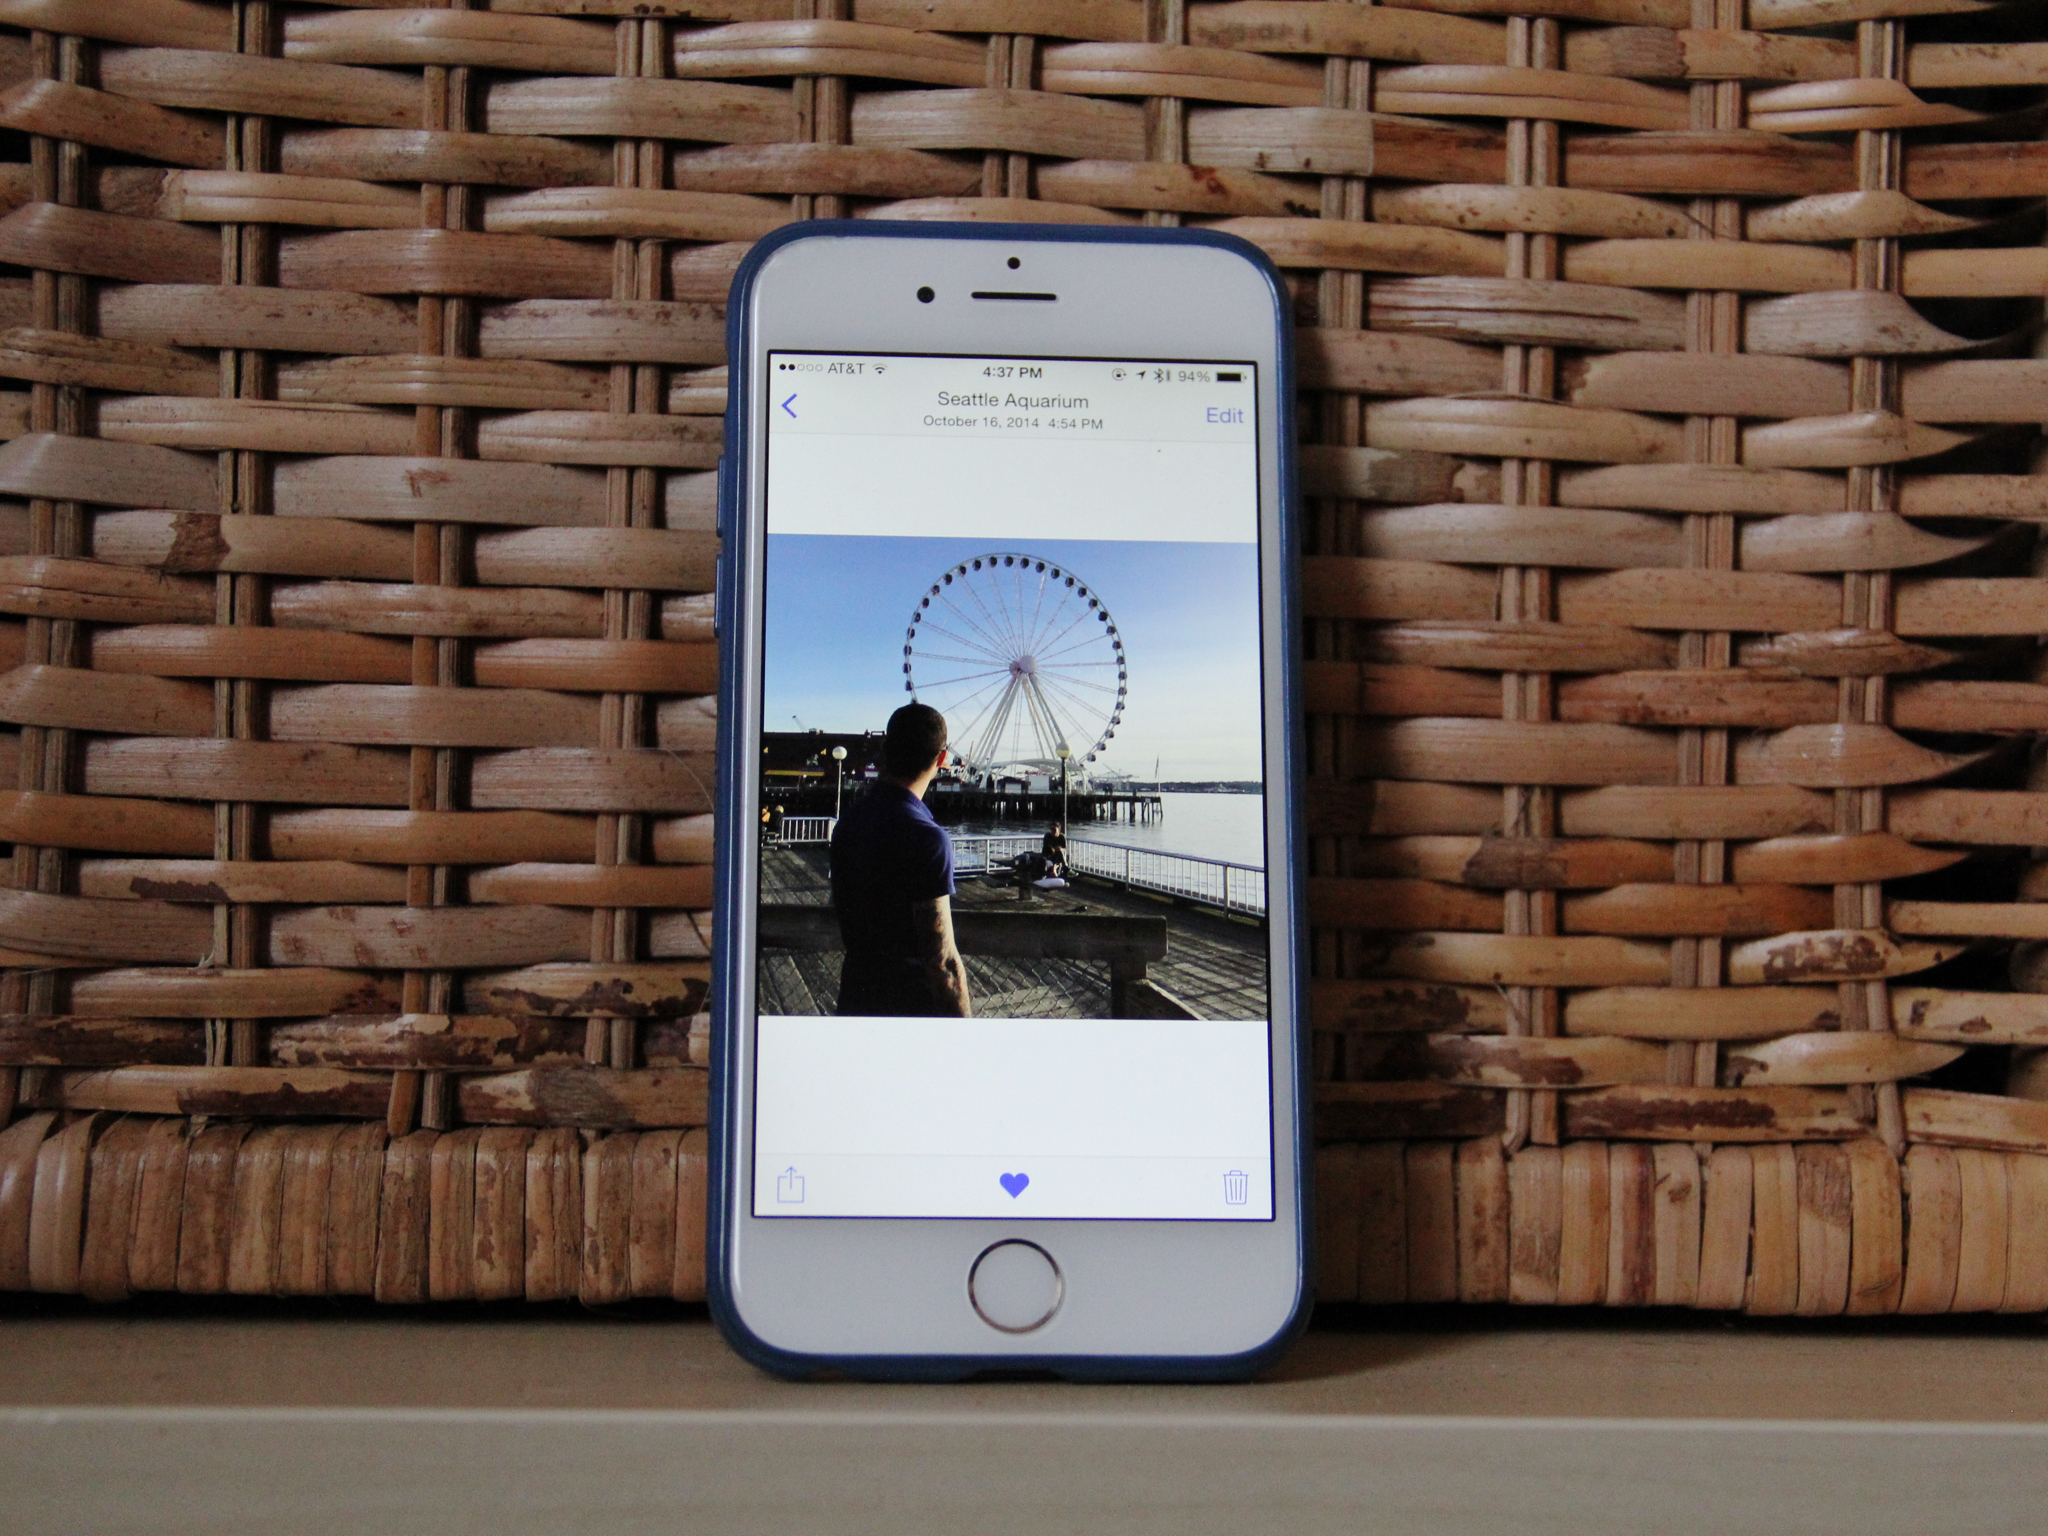 Icloud Photo Library: The Ultimate Guide